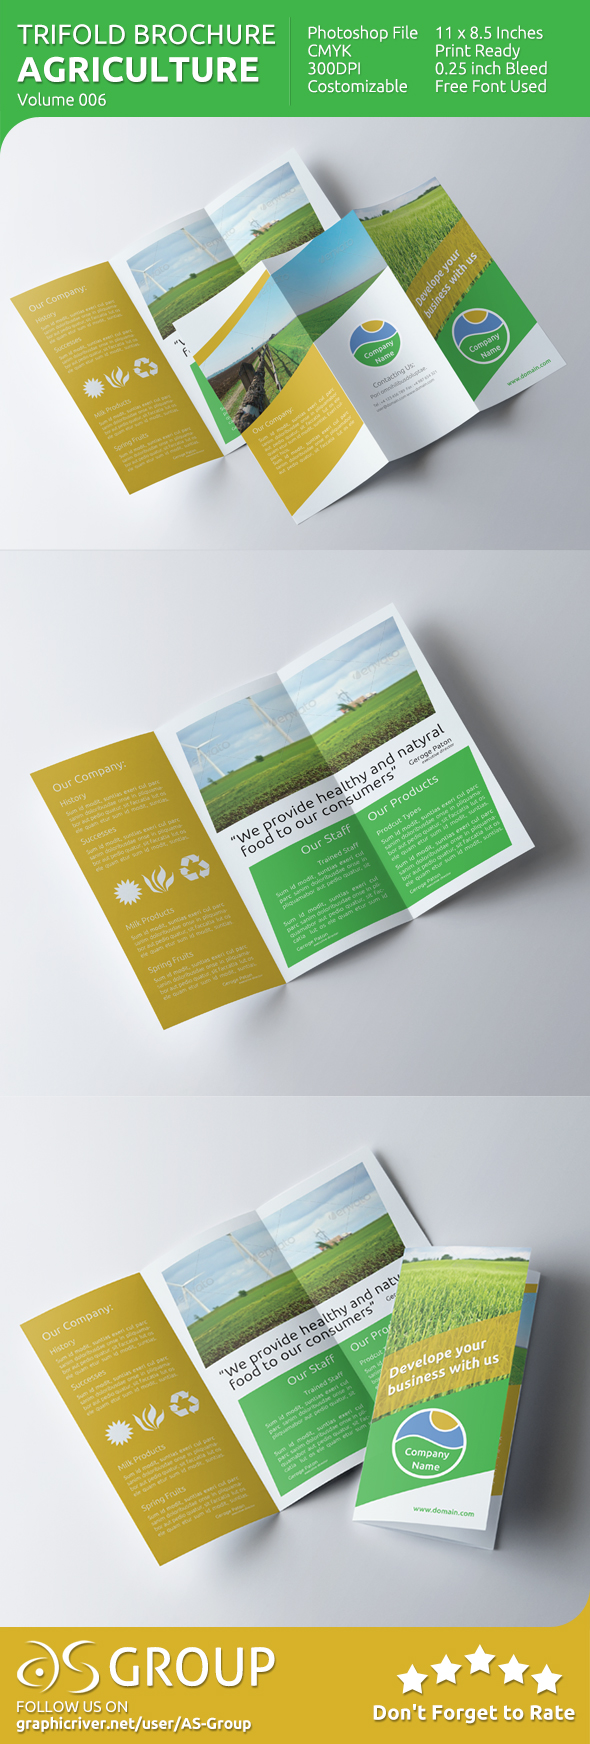 agriculture_tri-fold-brochure-v006-preview